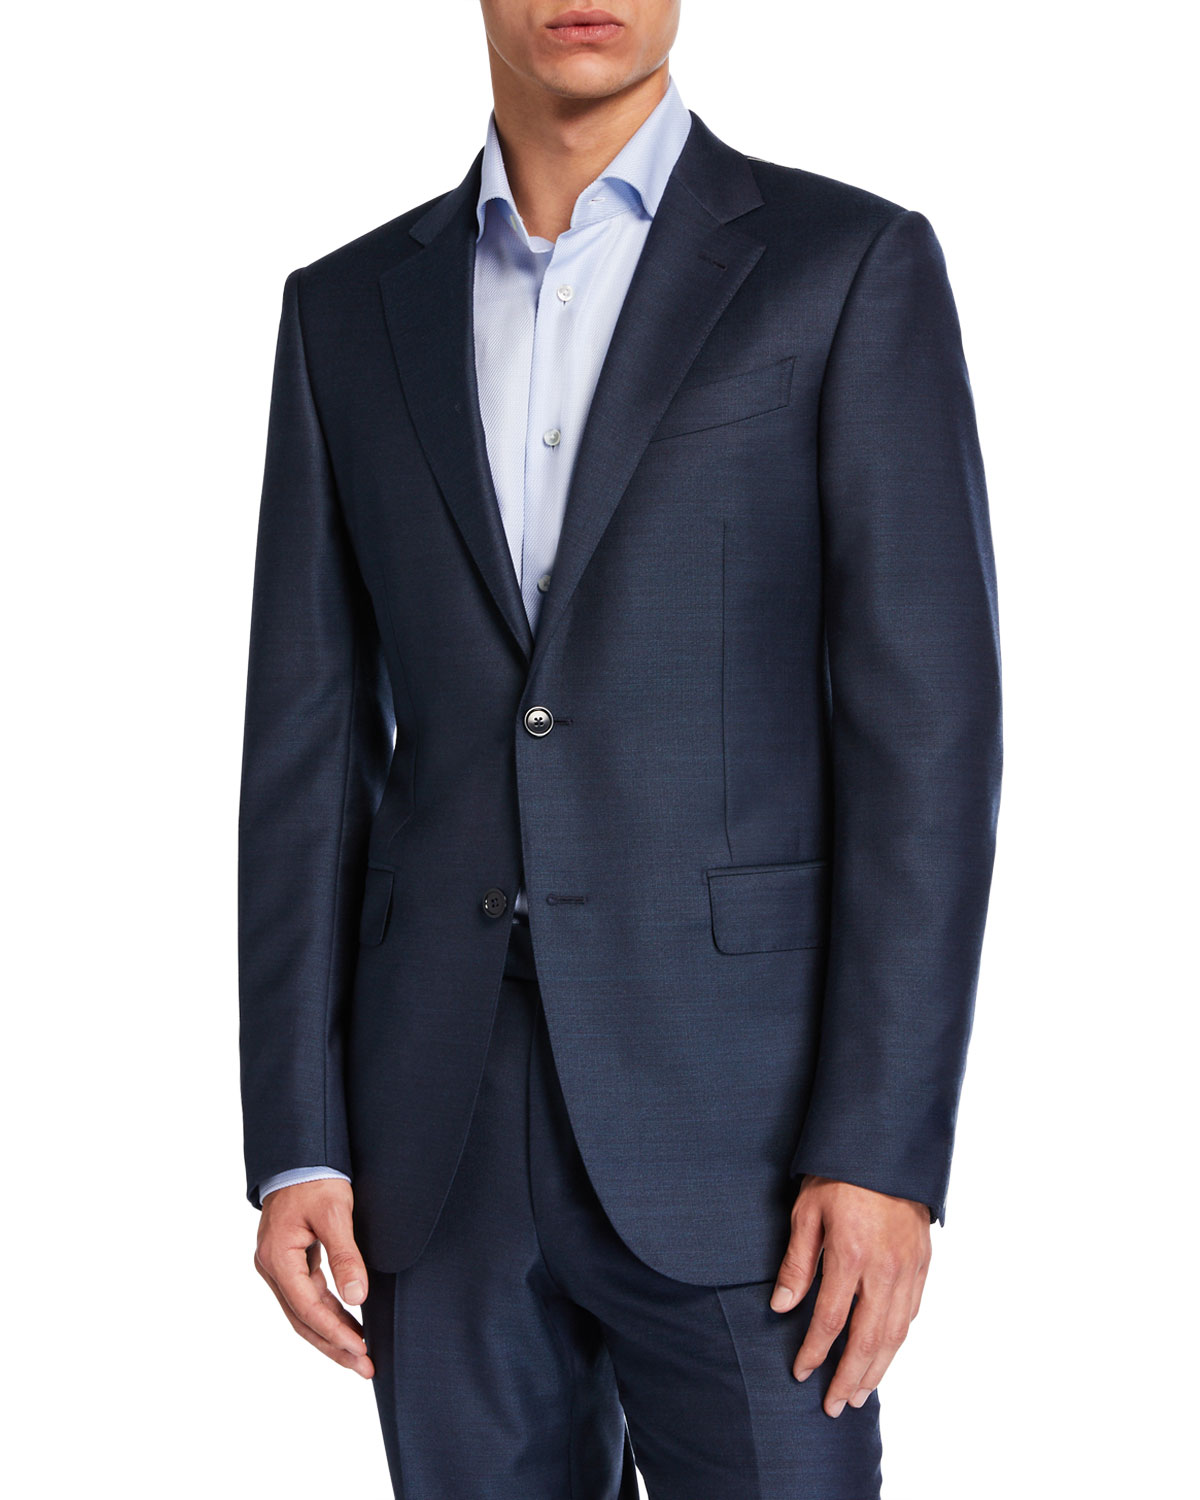 Ermenegildo Zegna Beachwear MEN'S SOLID WOOL-SILK TWO-PIECE SUIT